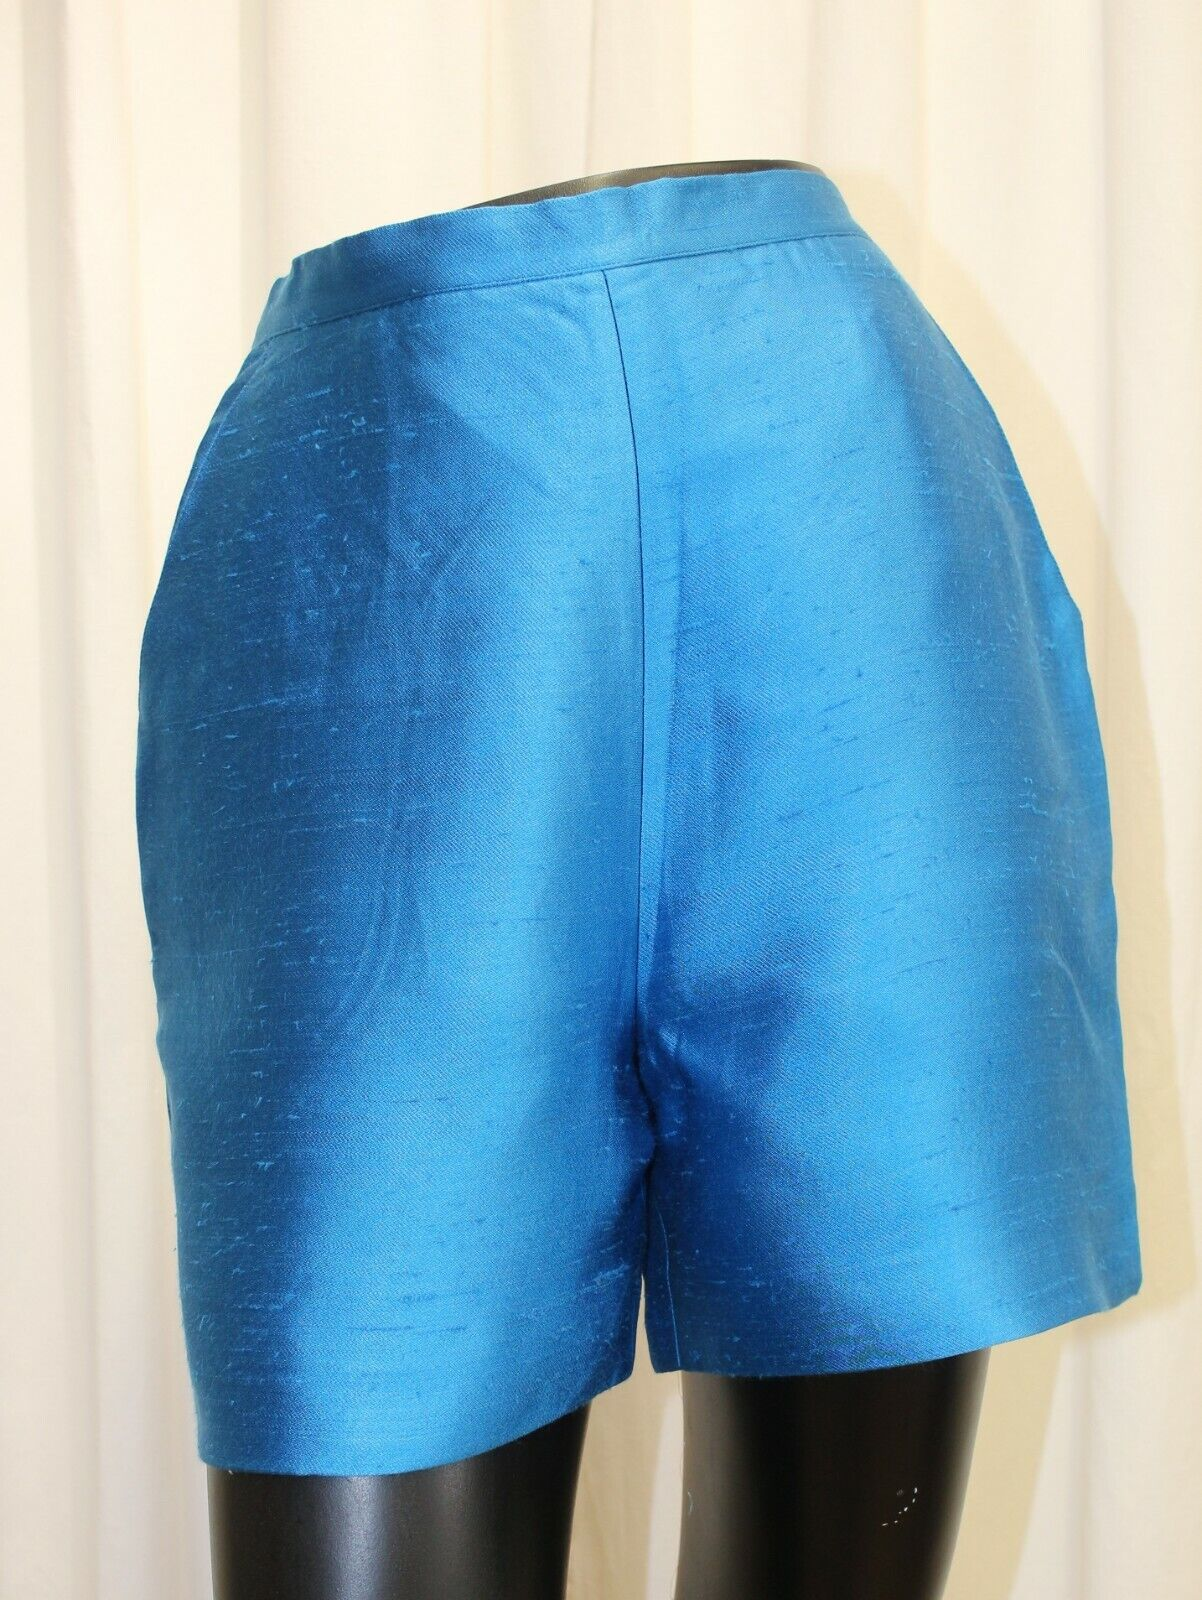 Short taille haute gianfranco ferre neuf vintage  bleu taille 38 made in italy